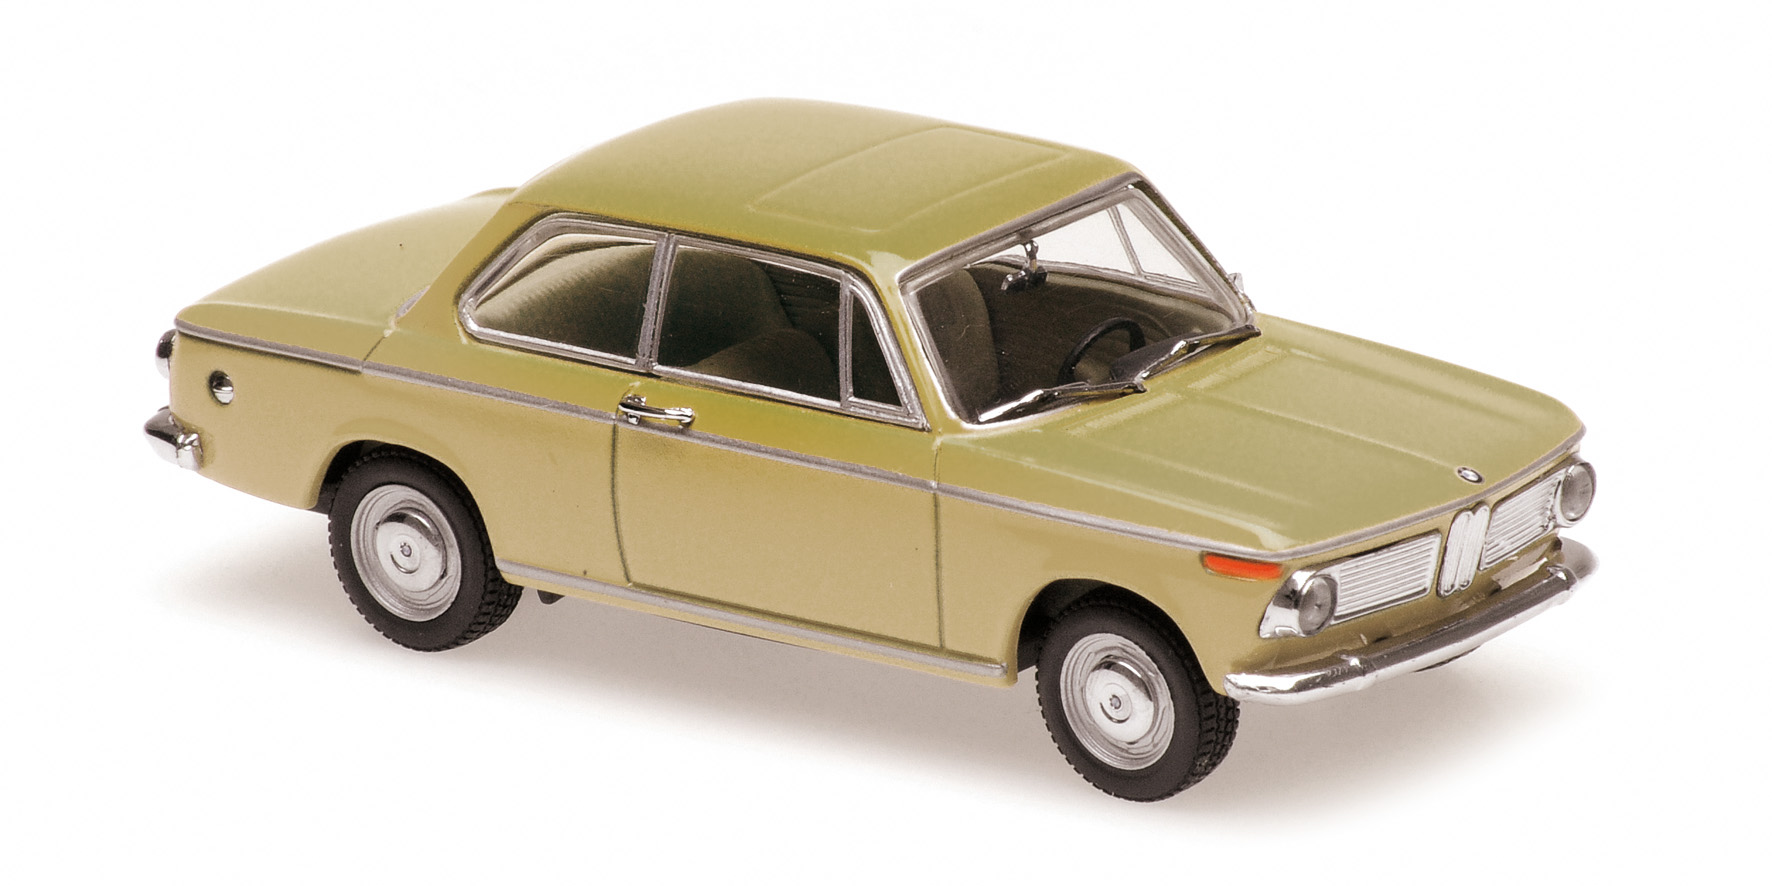 BMW 1600 1968 Nevada Beige